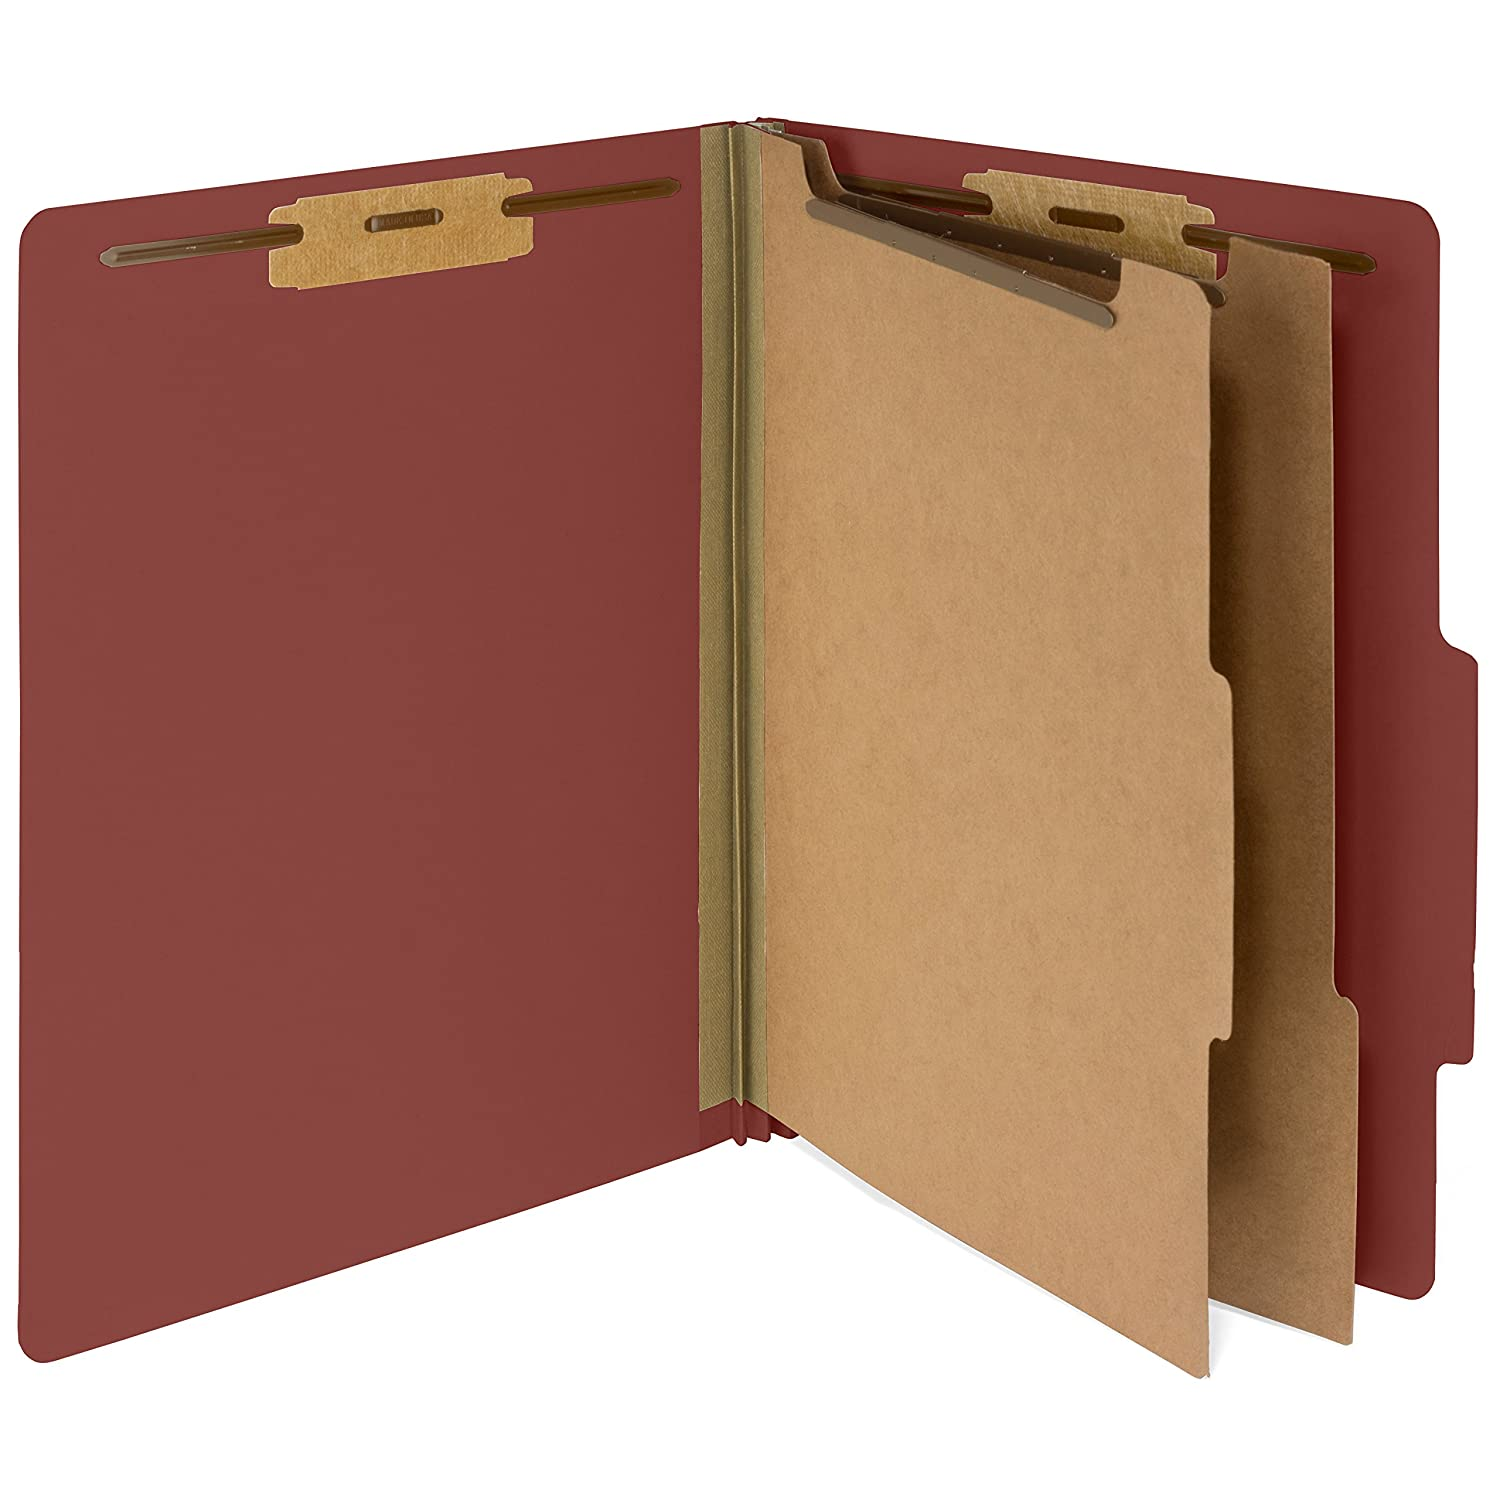 10 Red Classification Folders- 2 Divider-2'' Tyvek expansions- Durable 2 Prongs designed to organize standard medical files, law client files, office reports– Letter Size, Red, 10 Pack